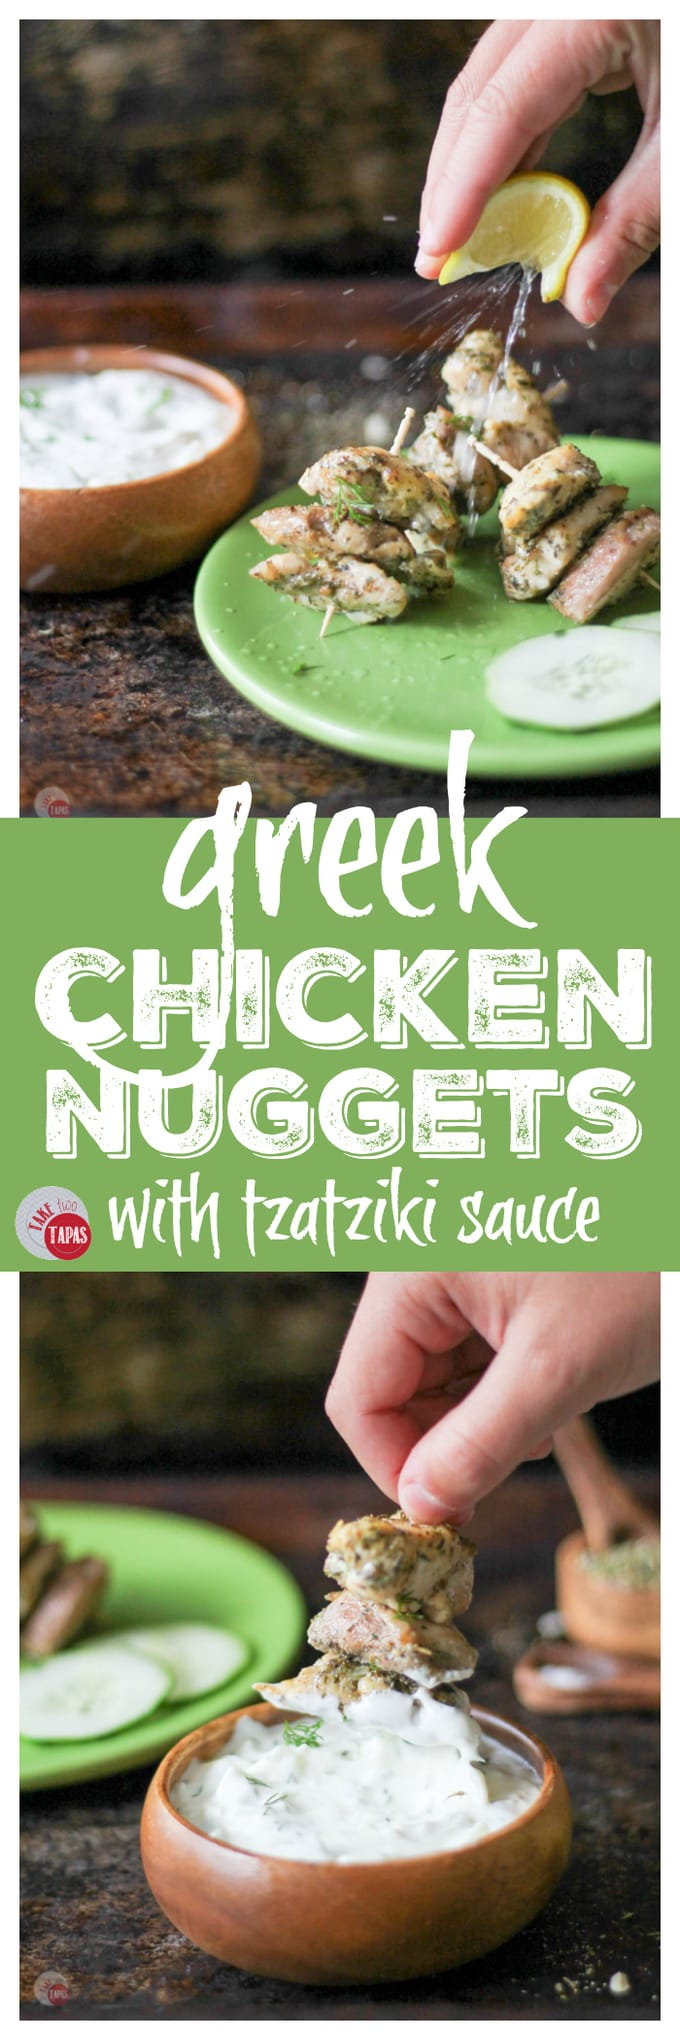 Greek Chicken Nuggets with Homemade Tzatziki Sauce | Take Two Tapas | #GreekFood #GreekSeasoning #Chicken #ChickenNuggets #Skewers #EasyPartyFoods